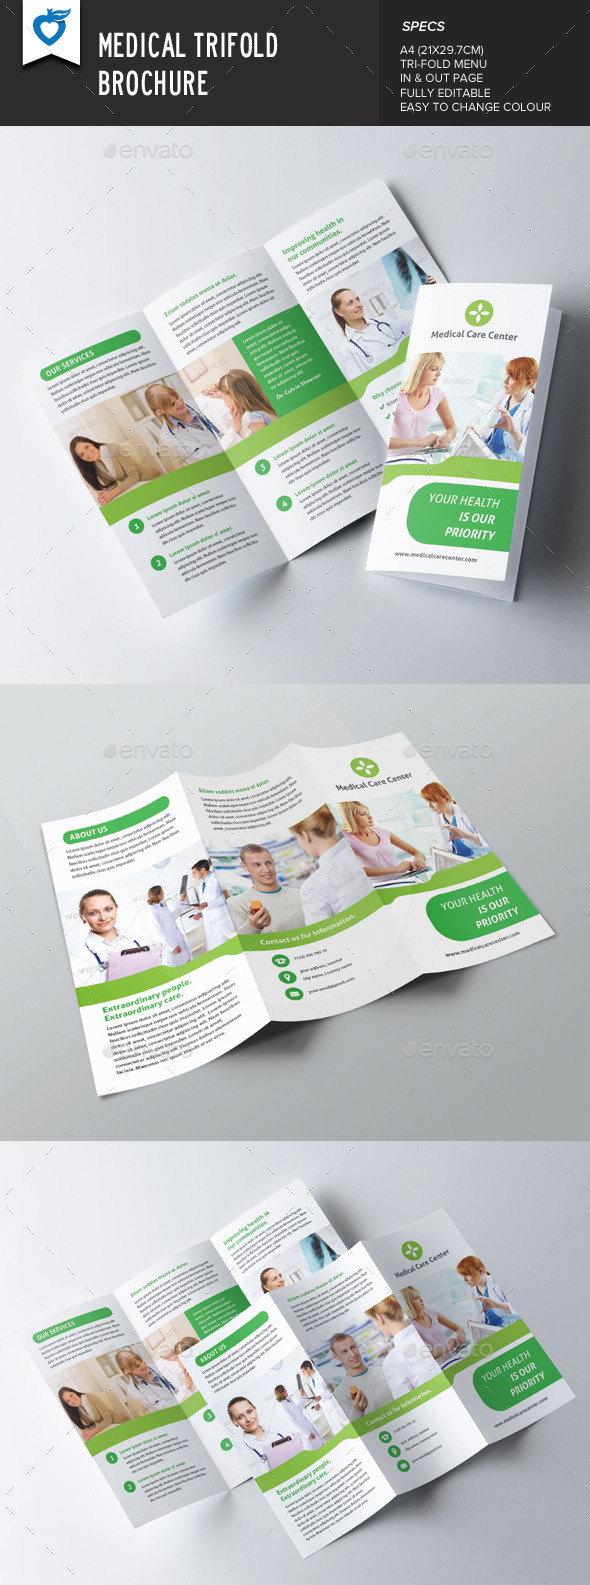 GraphicRiver Medical Trifold Brochure 8913028